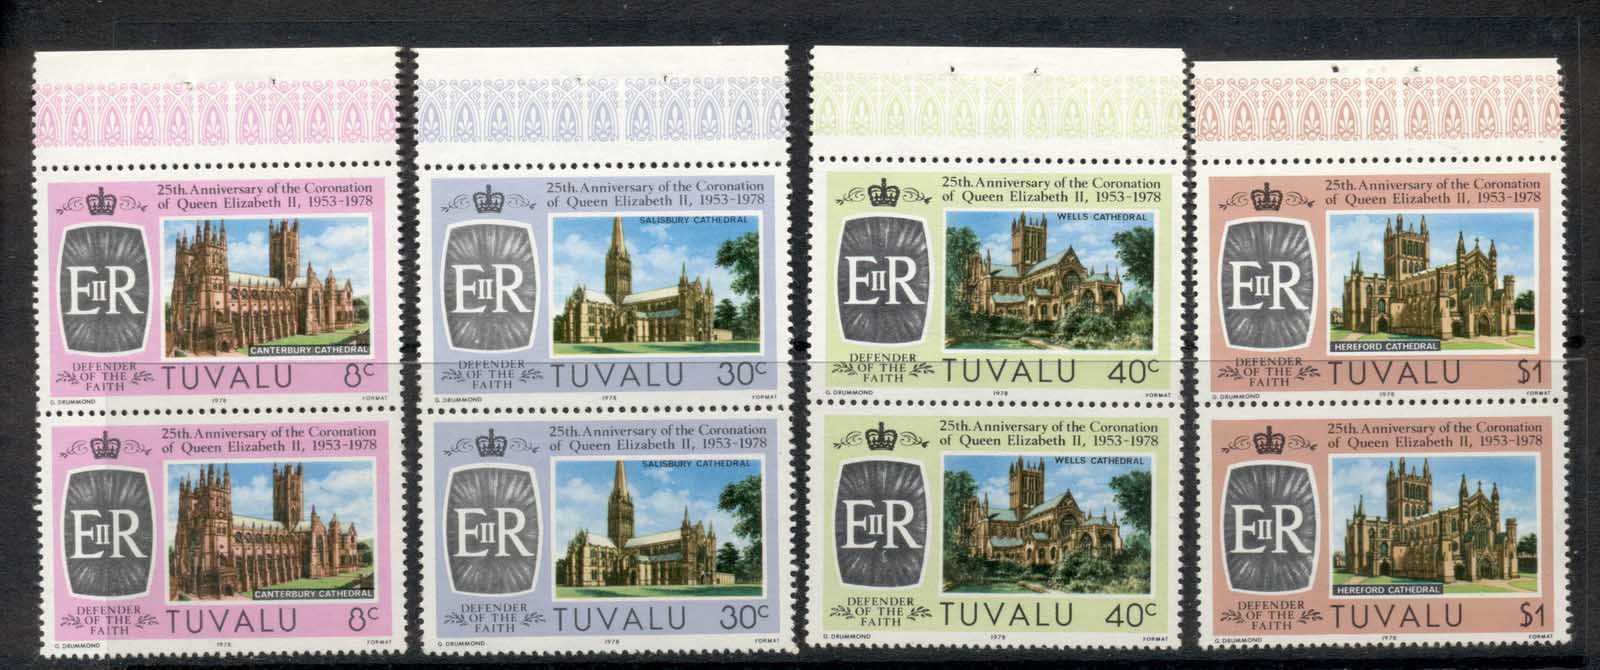 Tuvalu 1978 QEII Coronation 25th Anniv. Booklet panes MUH